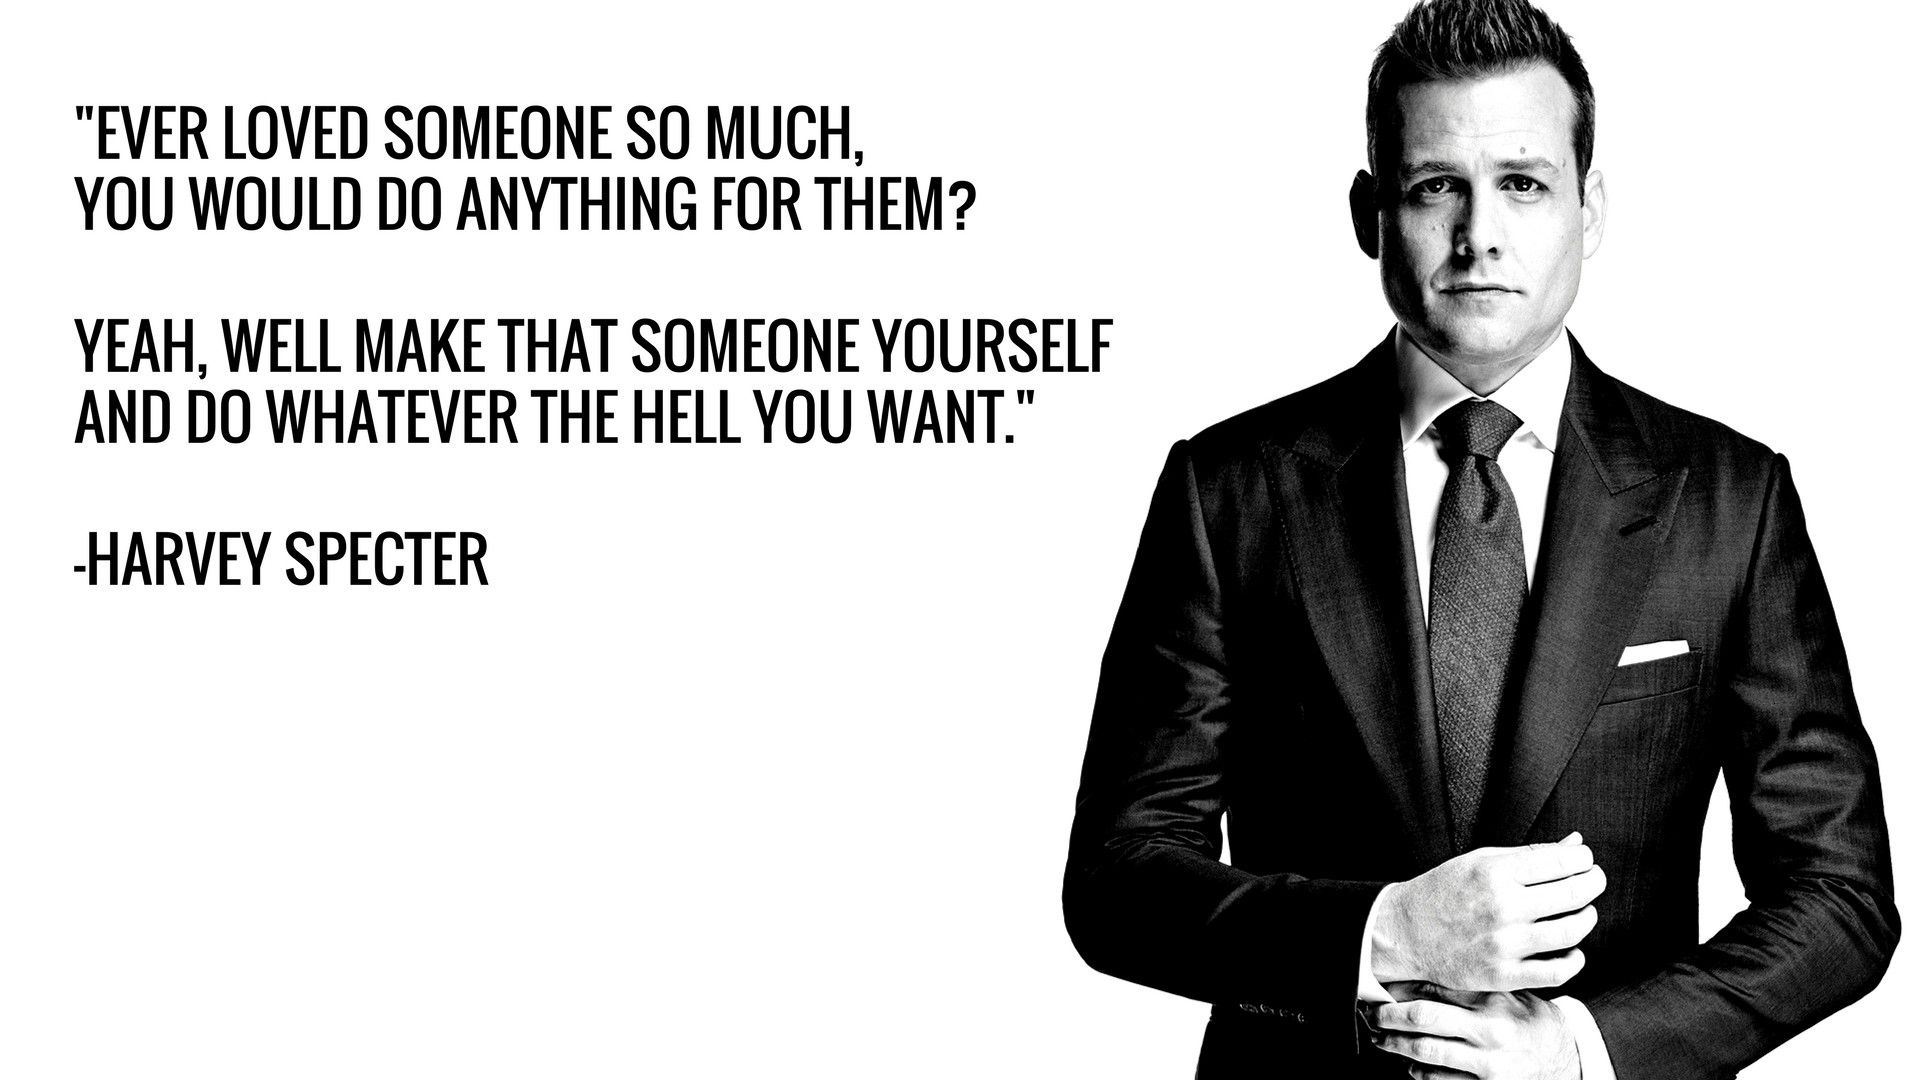 harvey specter wallpapers top free harvey specter backgrounds wallpaperaccess harvey specter wallpapers top free